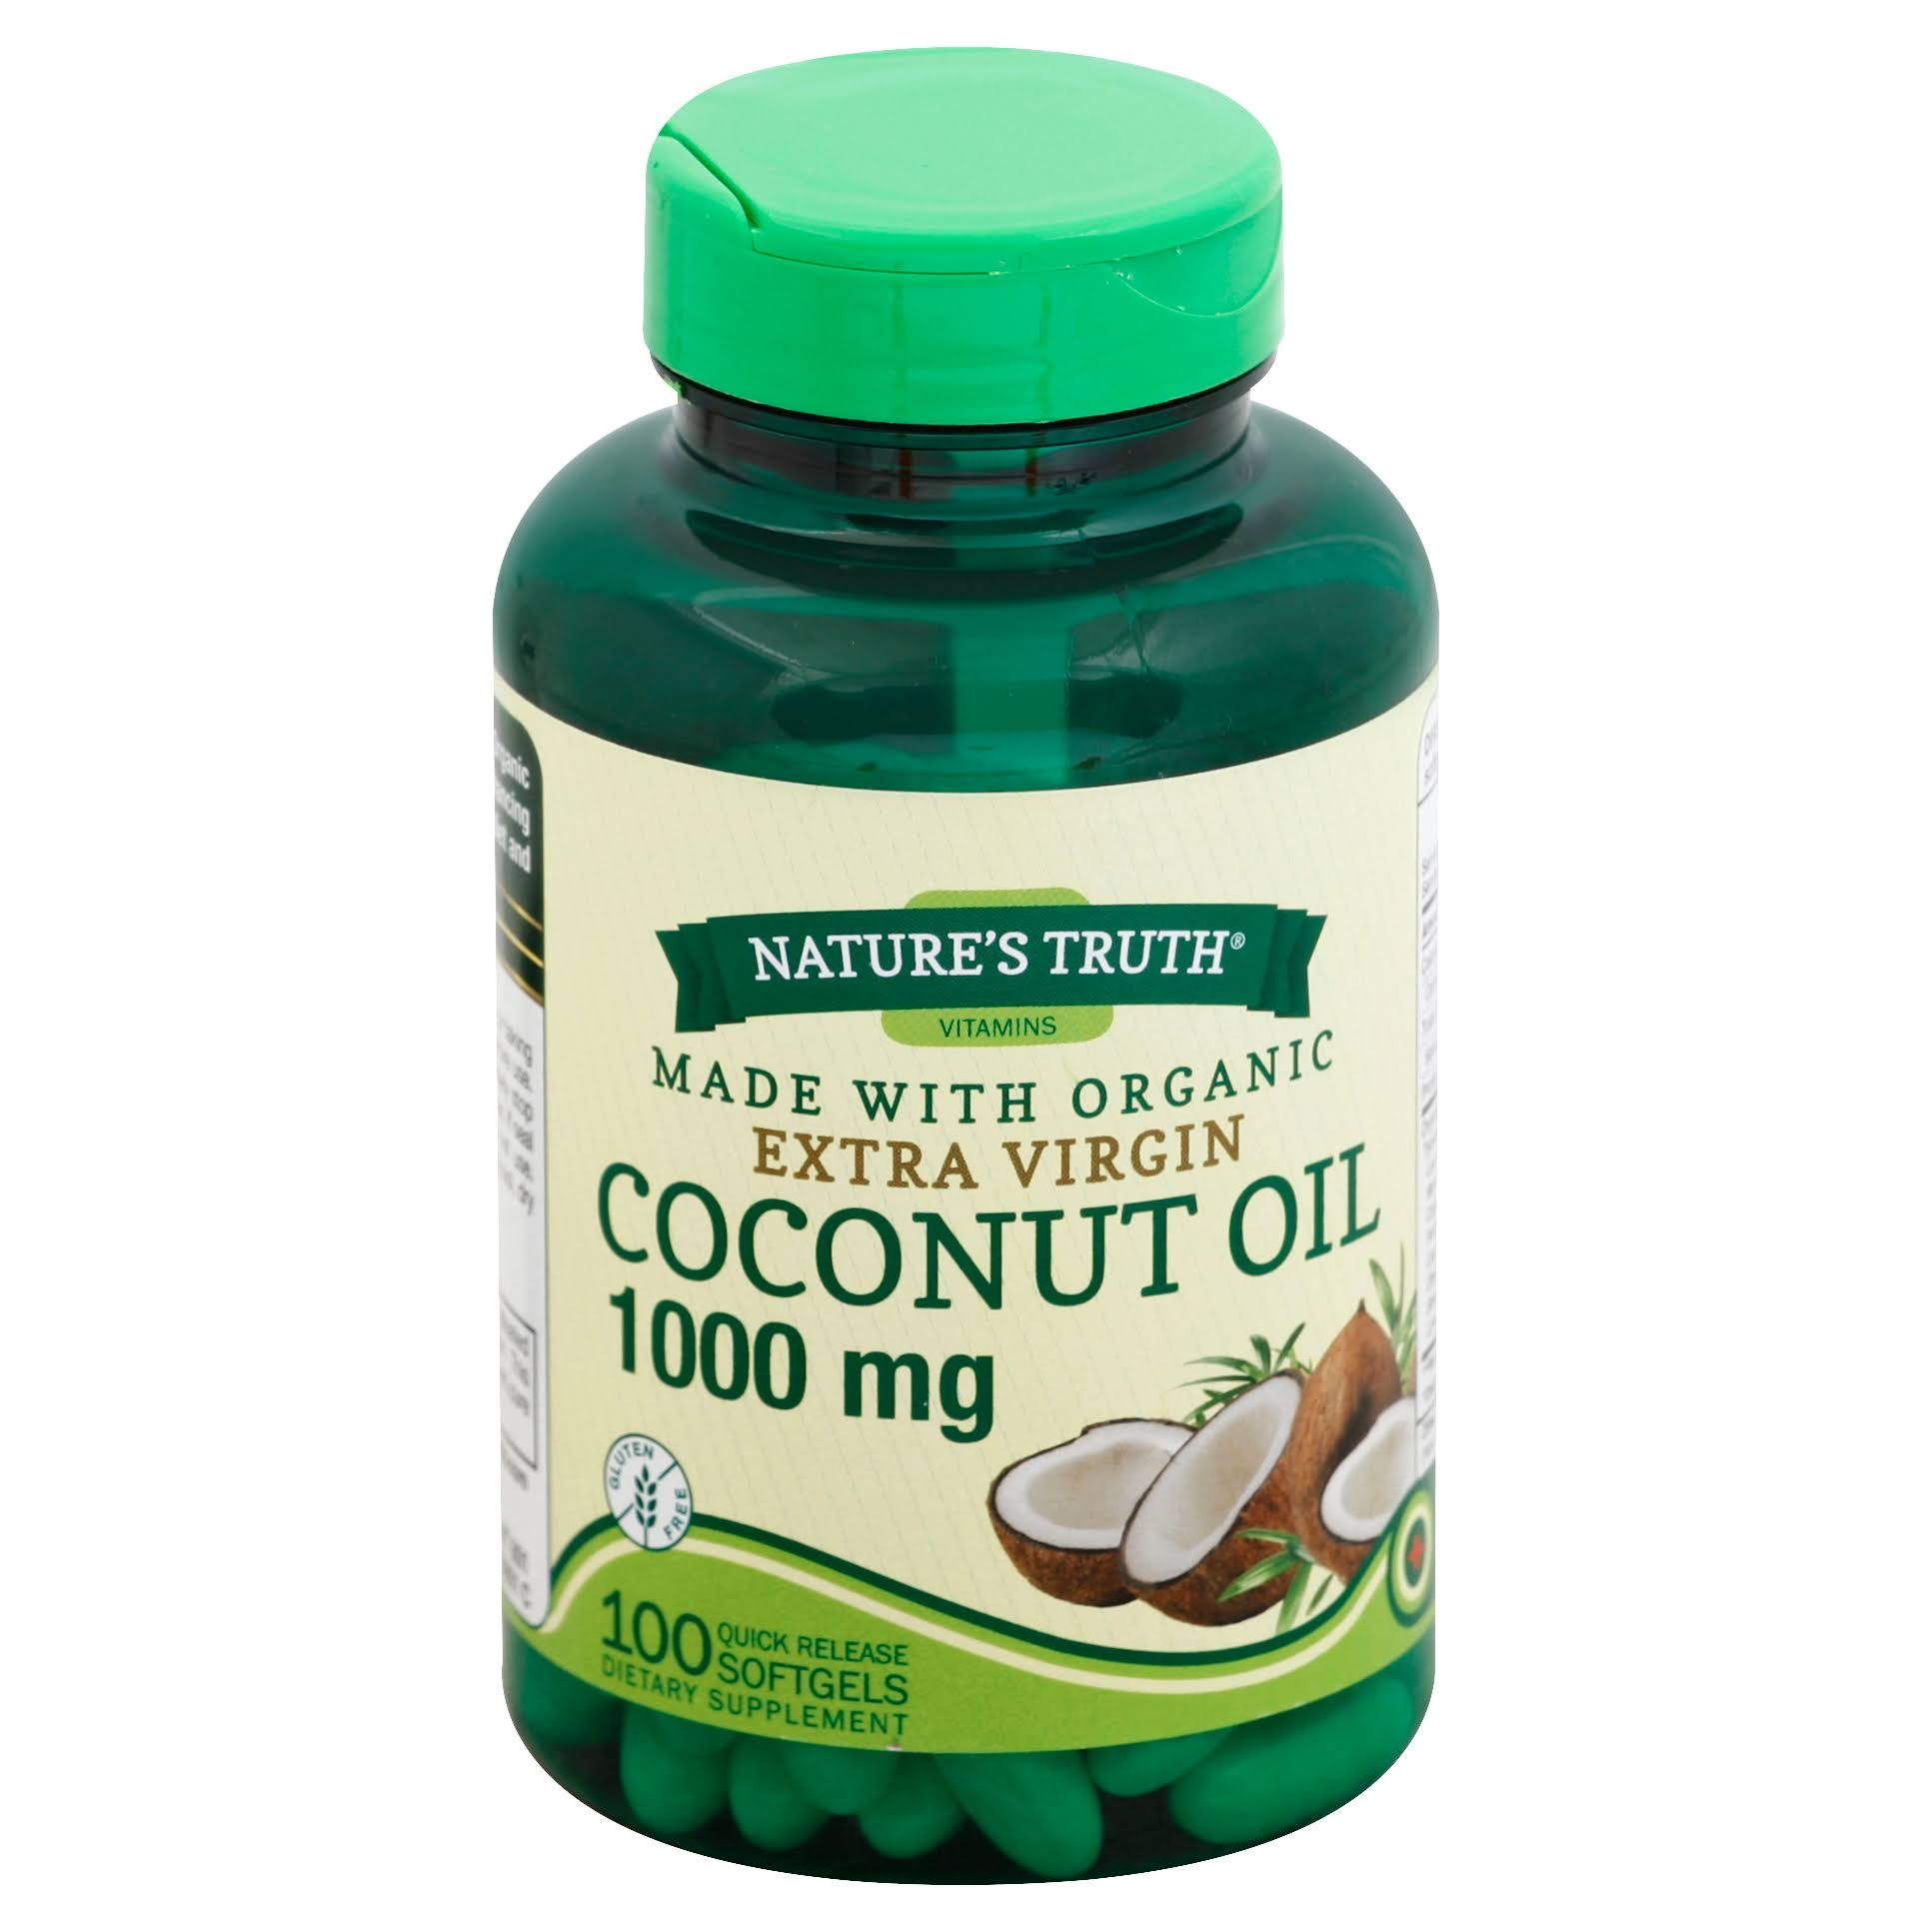 Nature's Truth Organic Extra Virgin Coconut Oil Dietary Supplement - 100 Softgels